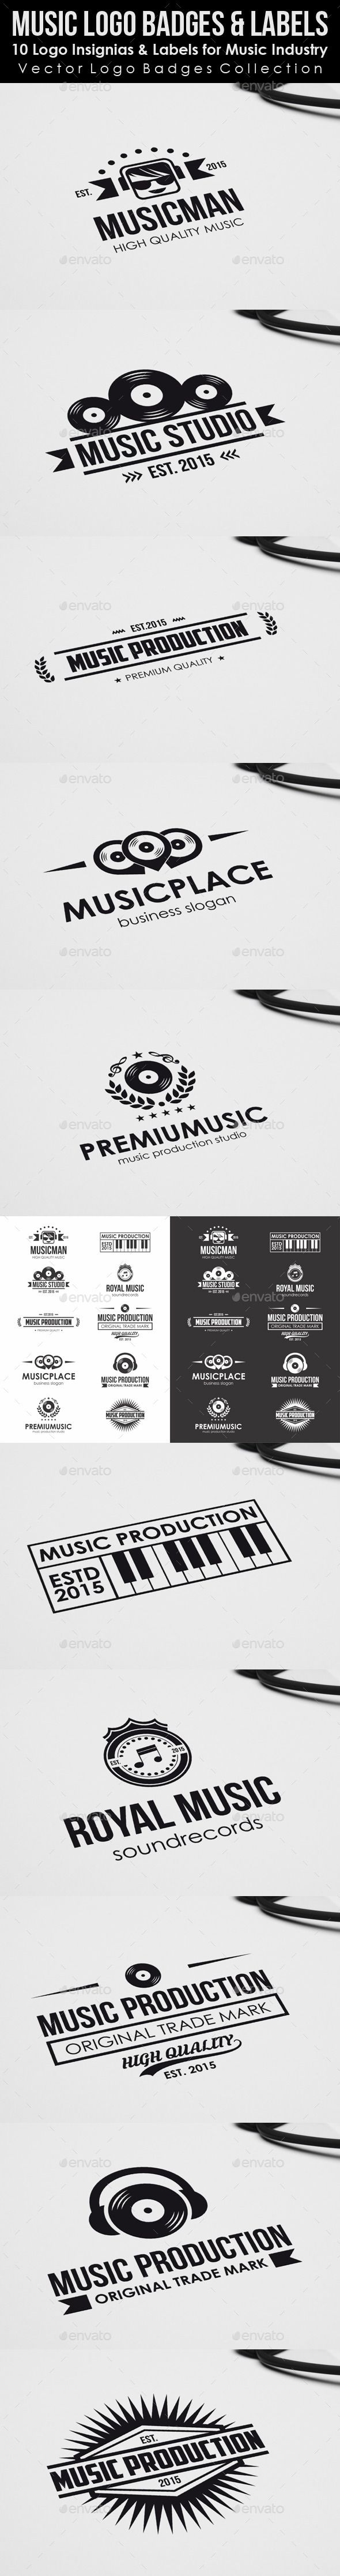 Music Logo Badges & Labels  -  PSD Template • Only available here! ➝ https://graphicriver.net/item/music-logo-badges-labels/12334657?ref=pxcr